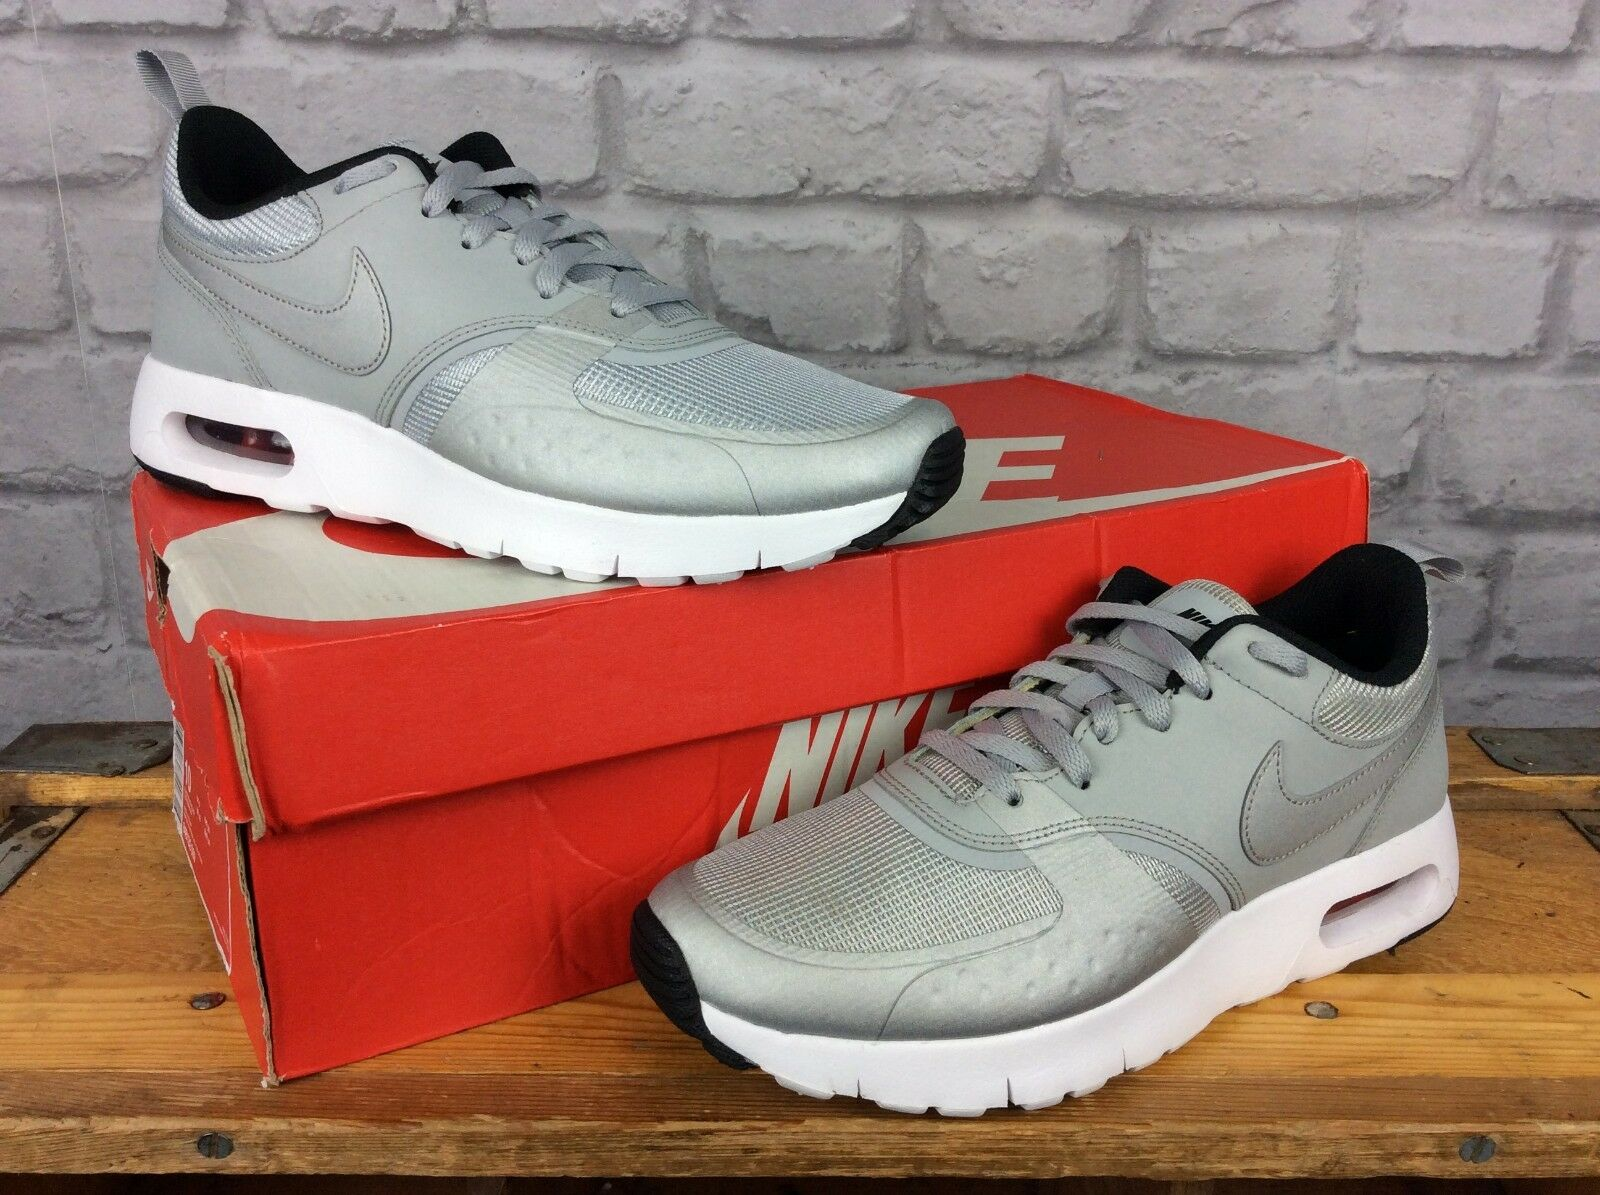 NIKE GREY UK 5 EUR 38 GREY NIKE SILVER METALLIC AIR MAX VISION CHILDREN BOYS GIRLS LADIES 67b5bf